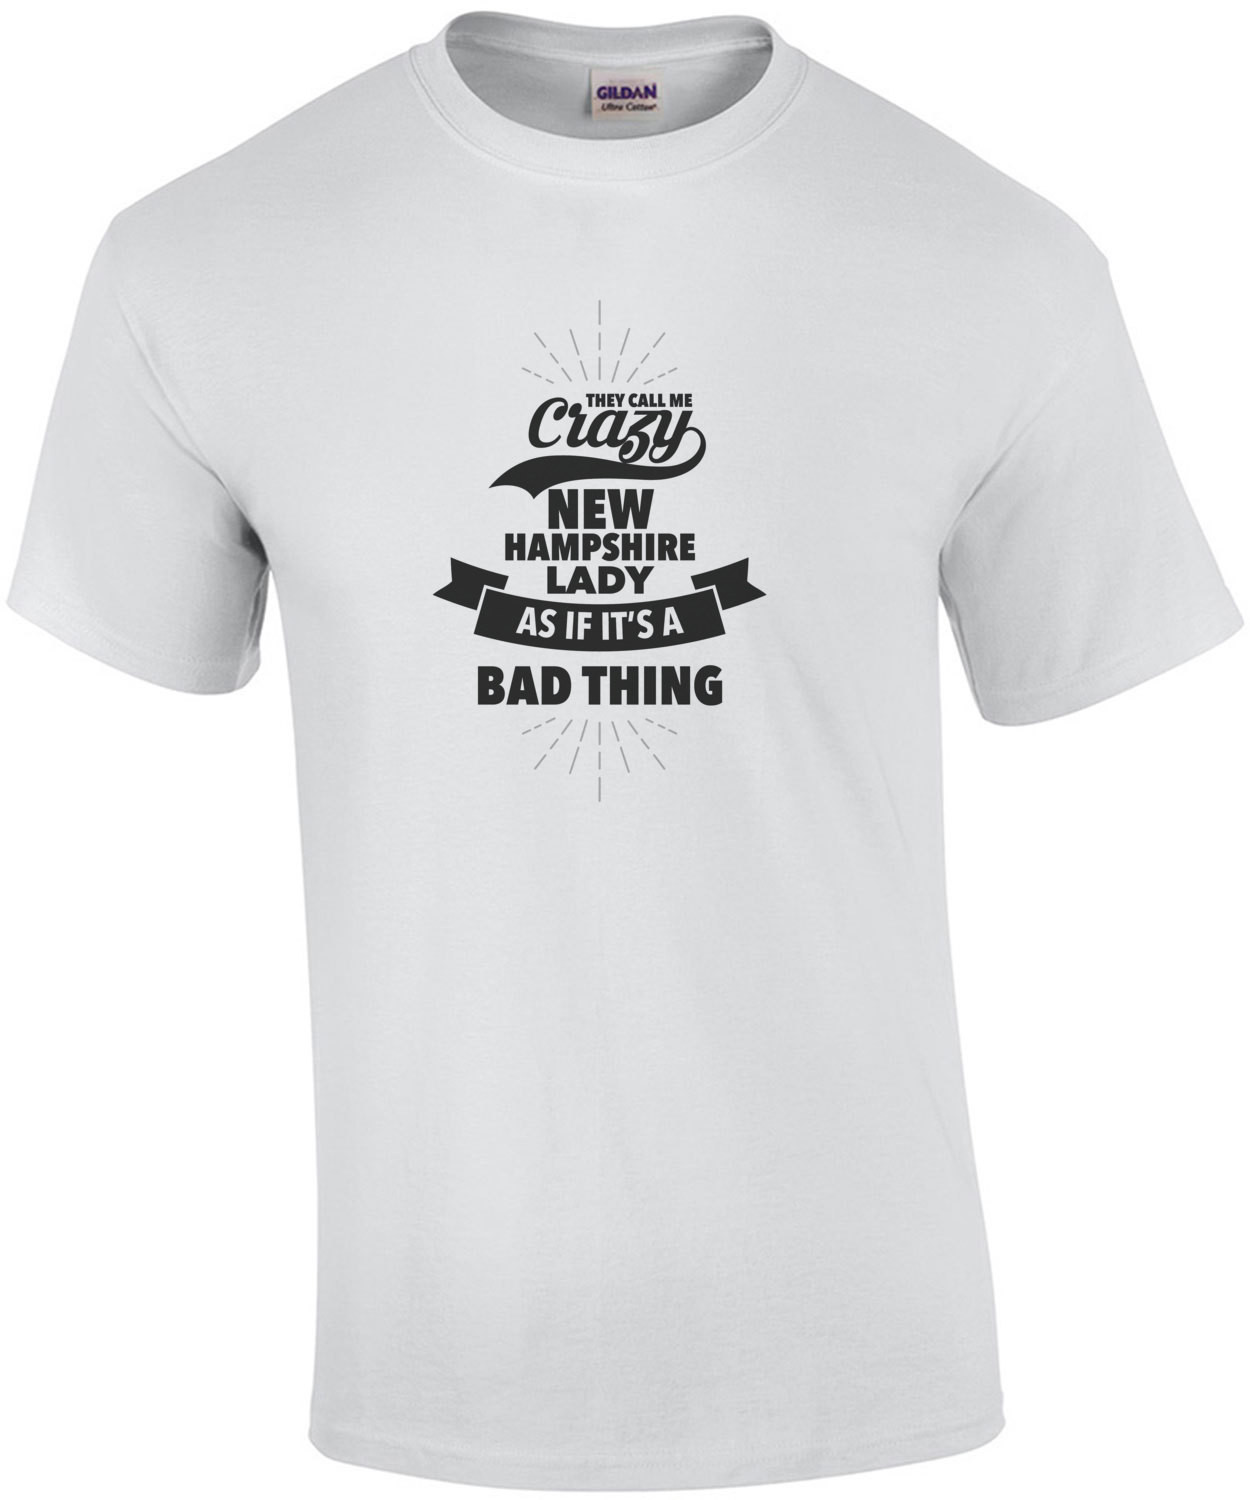 They call me crazy New Hampshire lady as if its a bad thing - New Hampshire T-Shirt